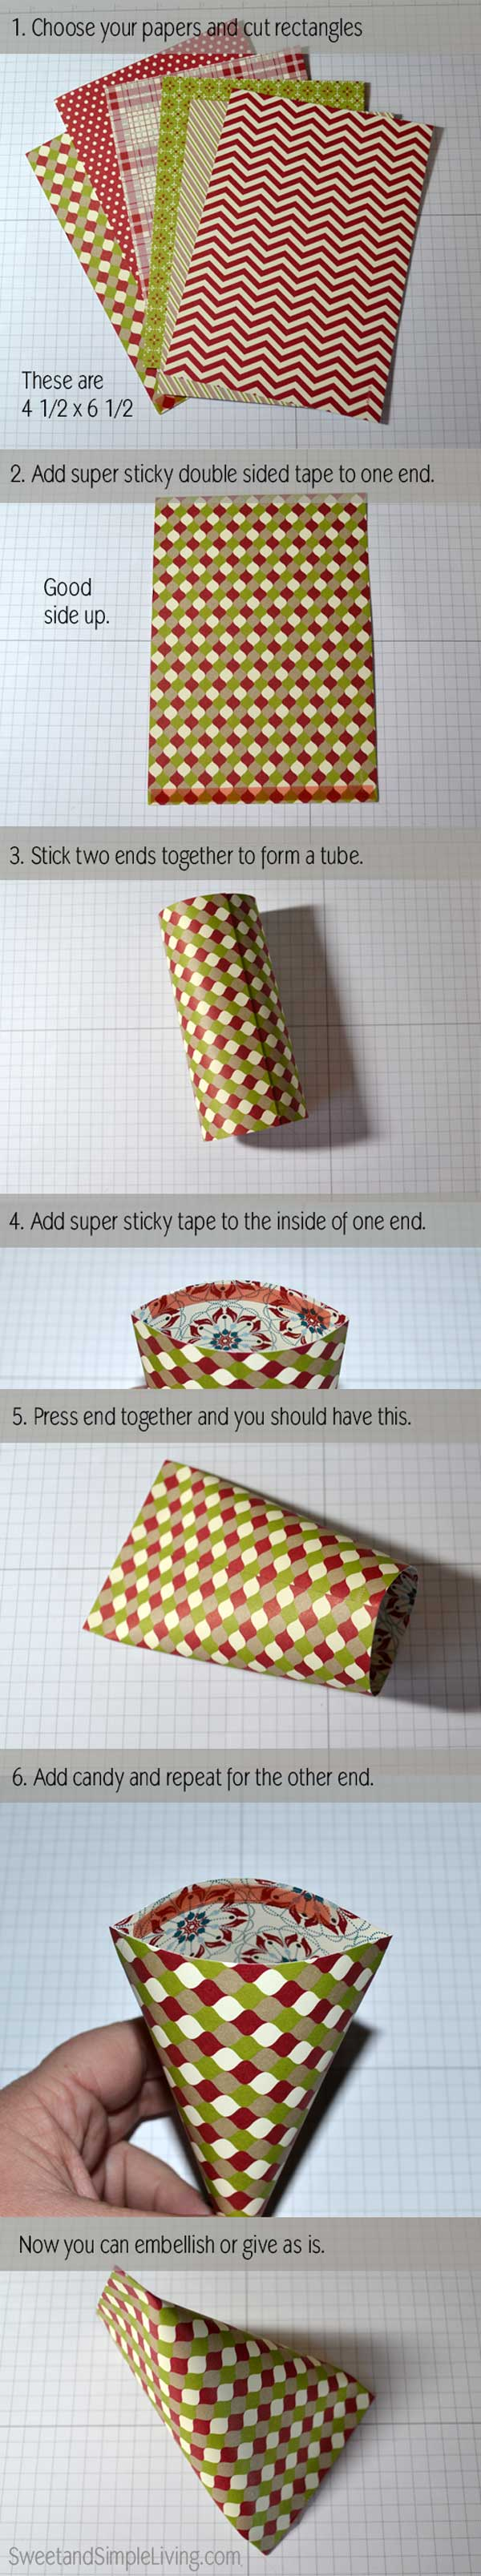 Christmas Paper Craft Ideas Sour Cream Container Instructions